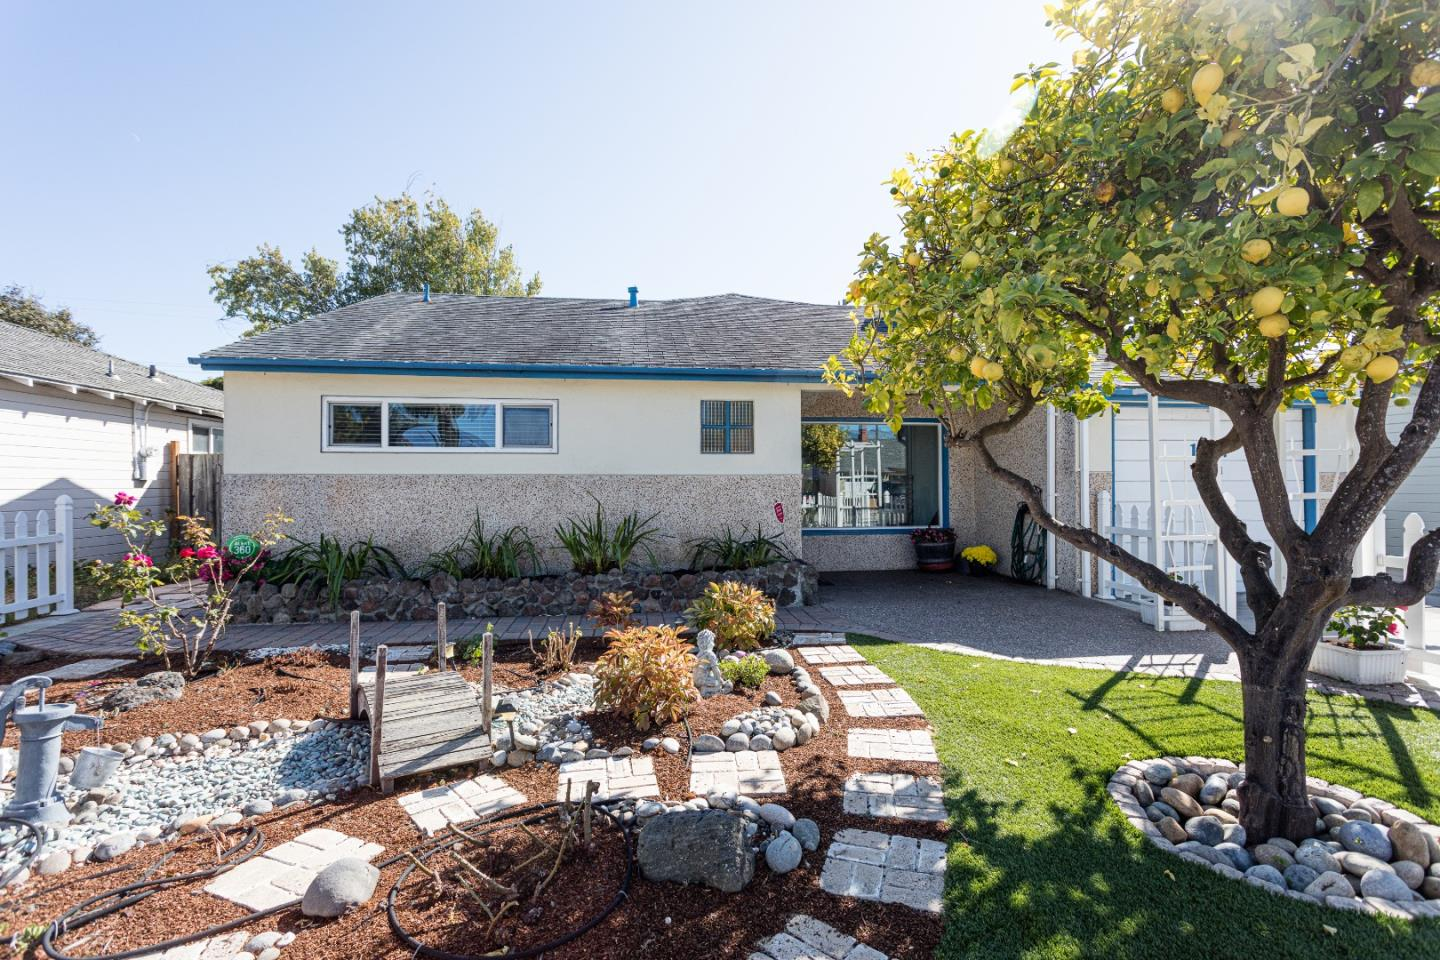 Photo for 1724 Dale AVE, SAN MATEO, CA 94401 (MLS # ML81771429)